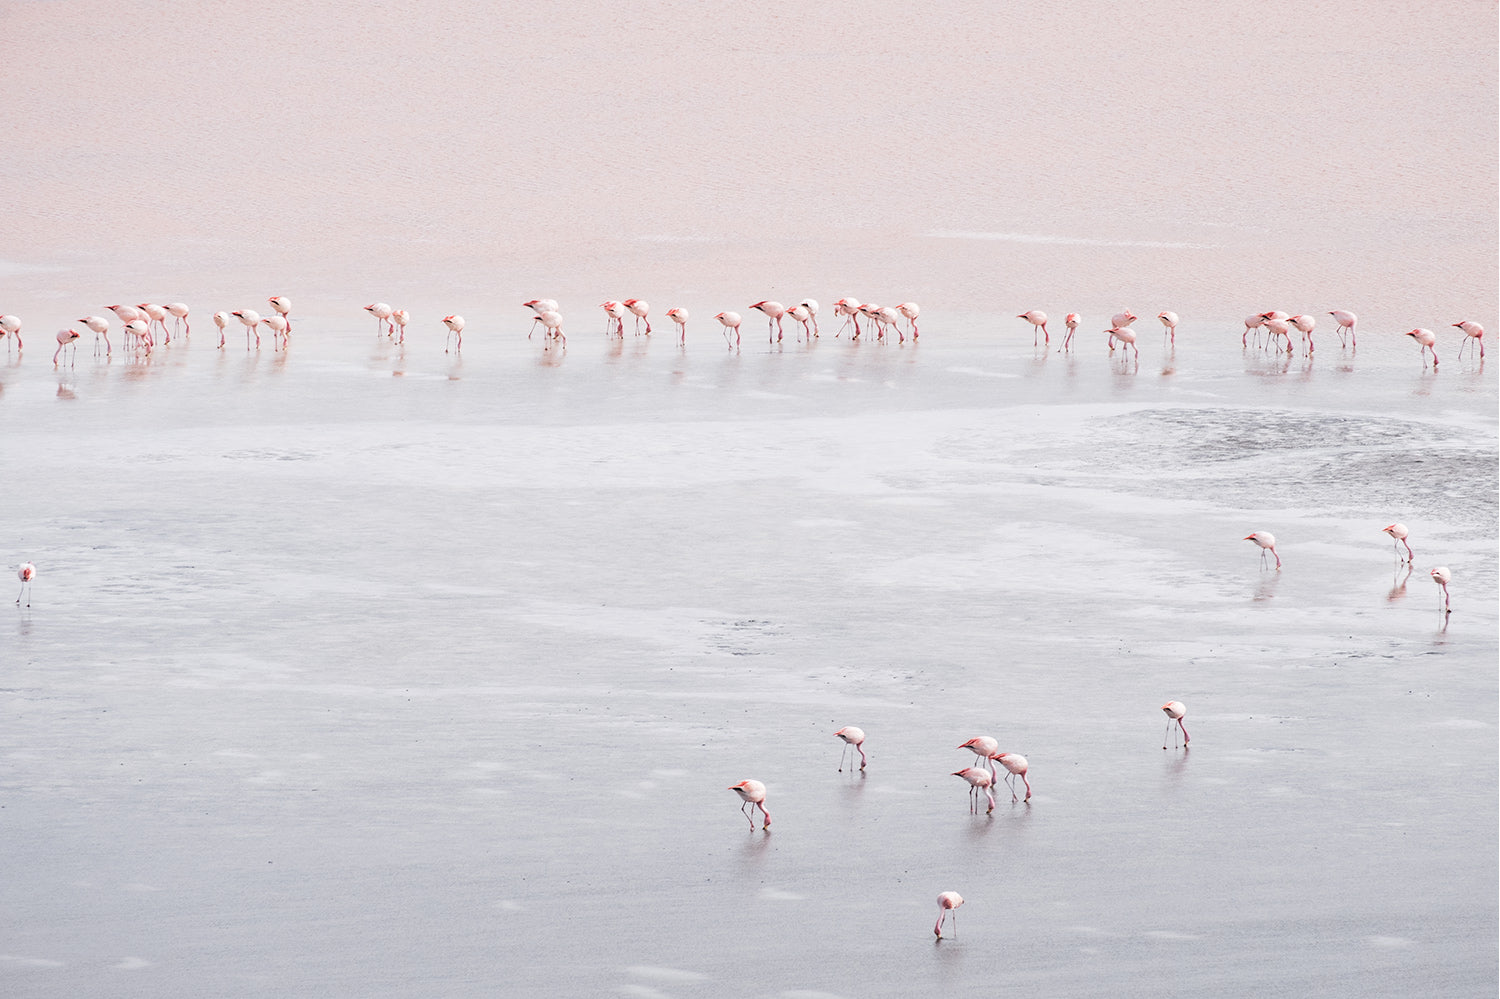 Pink Flamingos spread around the lake near the Salt Flats, Bolivia. Flamingos wade along the edge and through the shallows